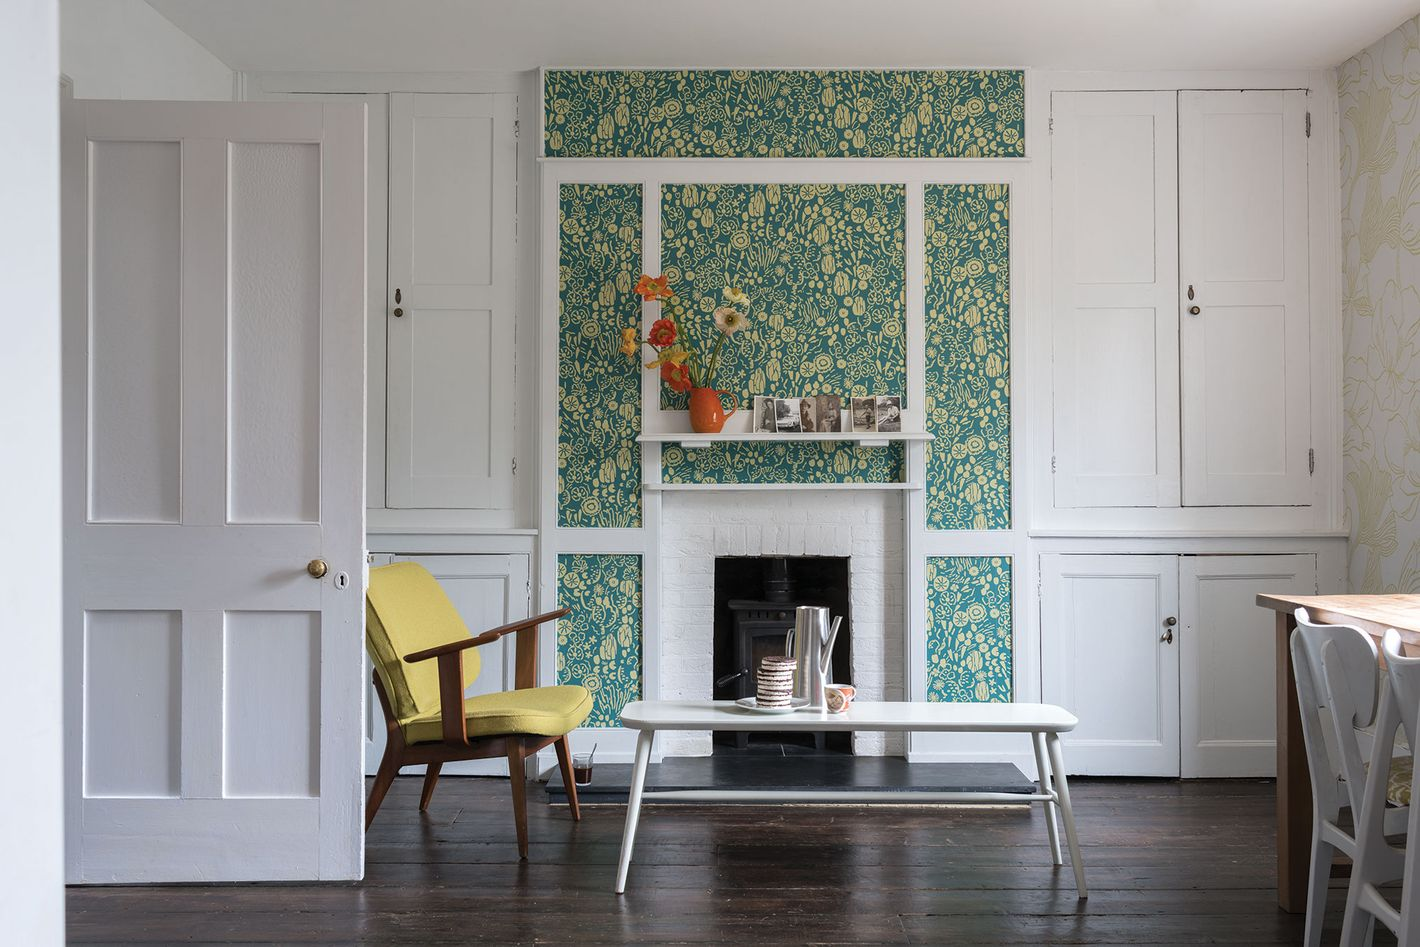 Farrow & Ball's Atamaca wallpaper